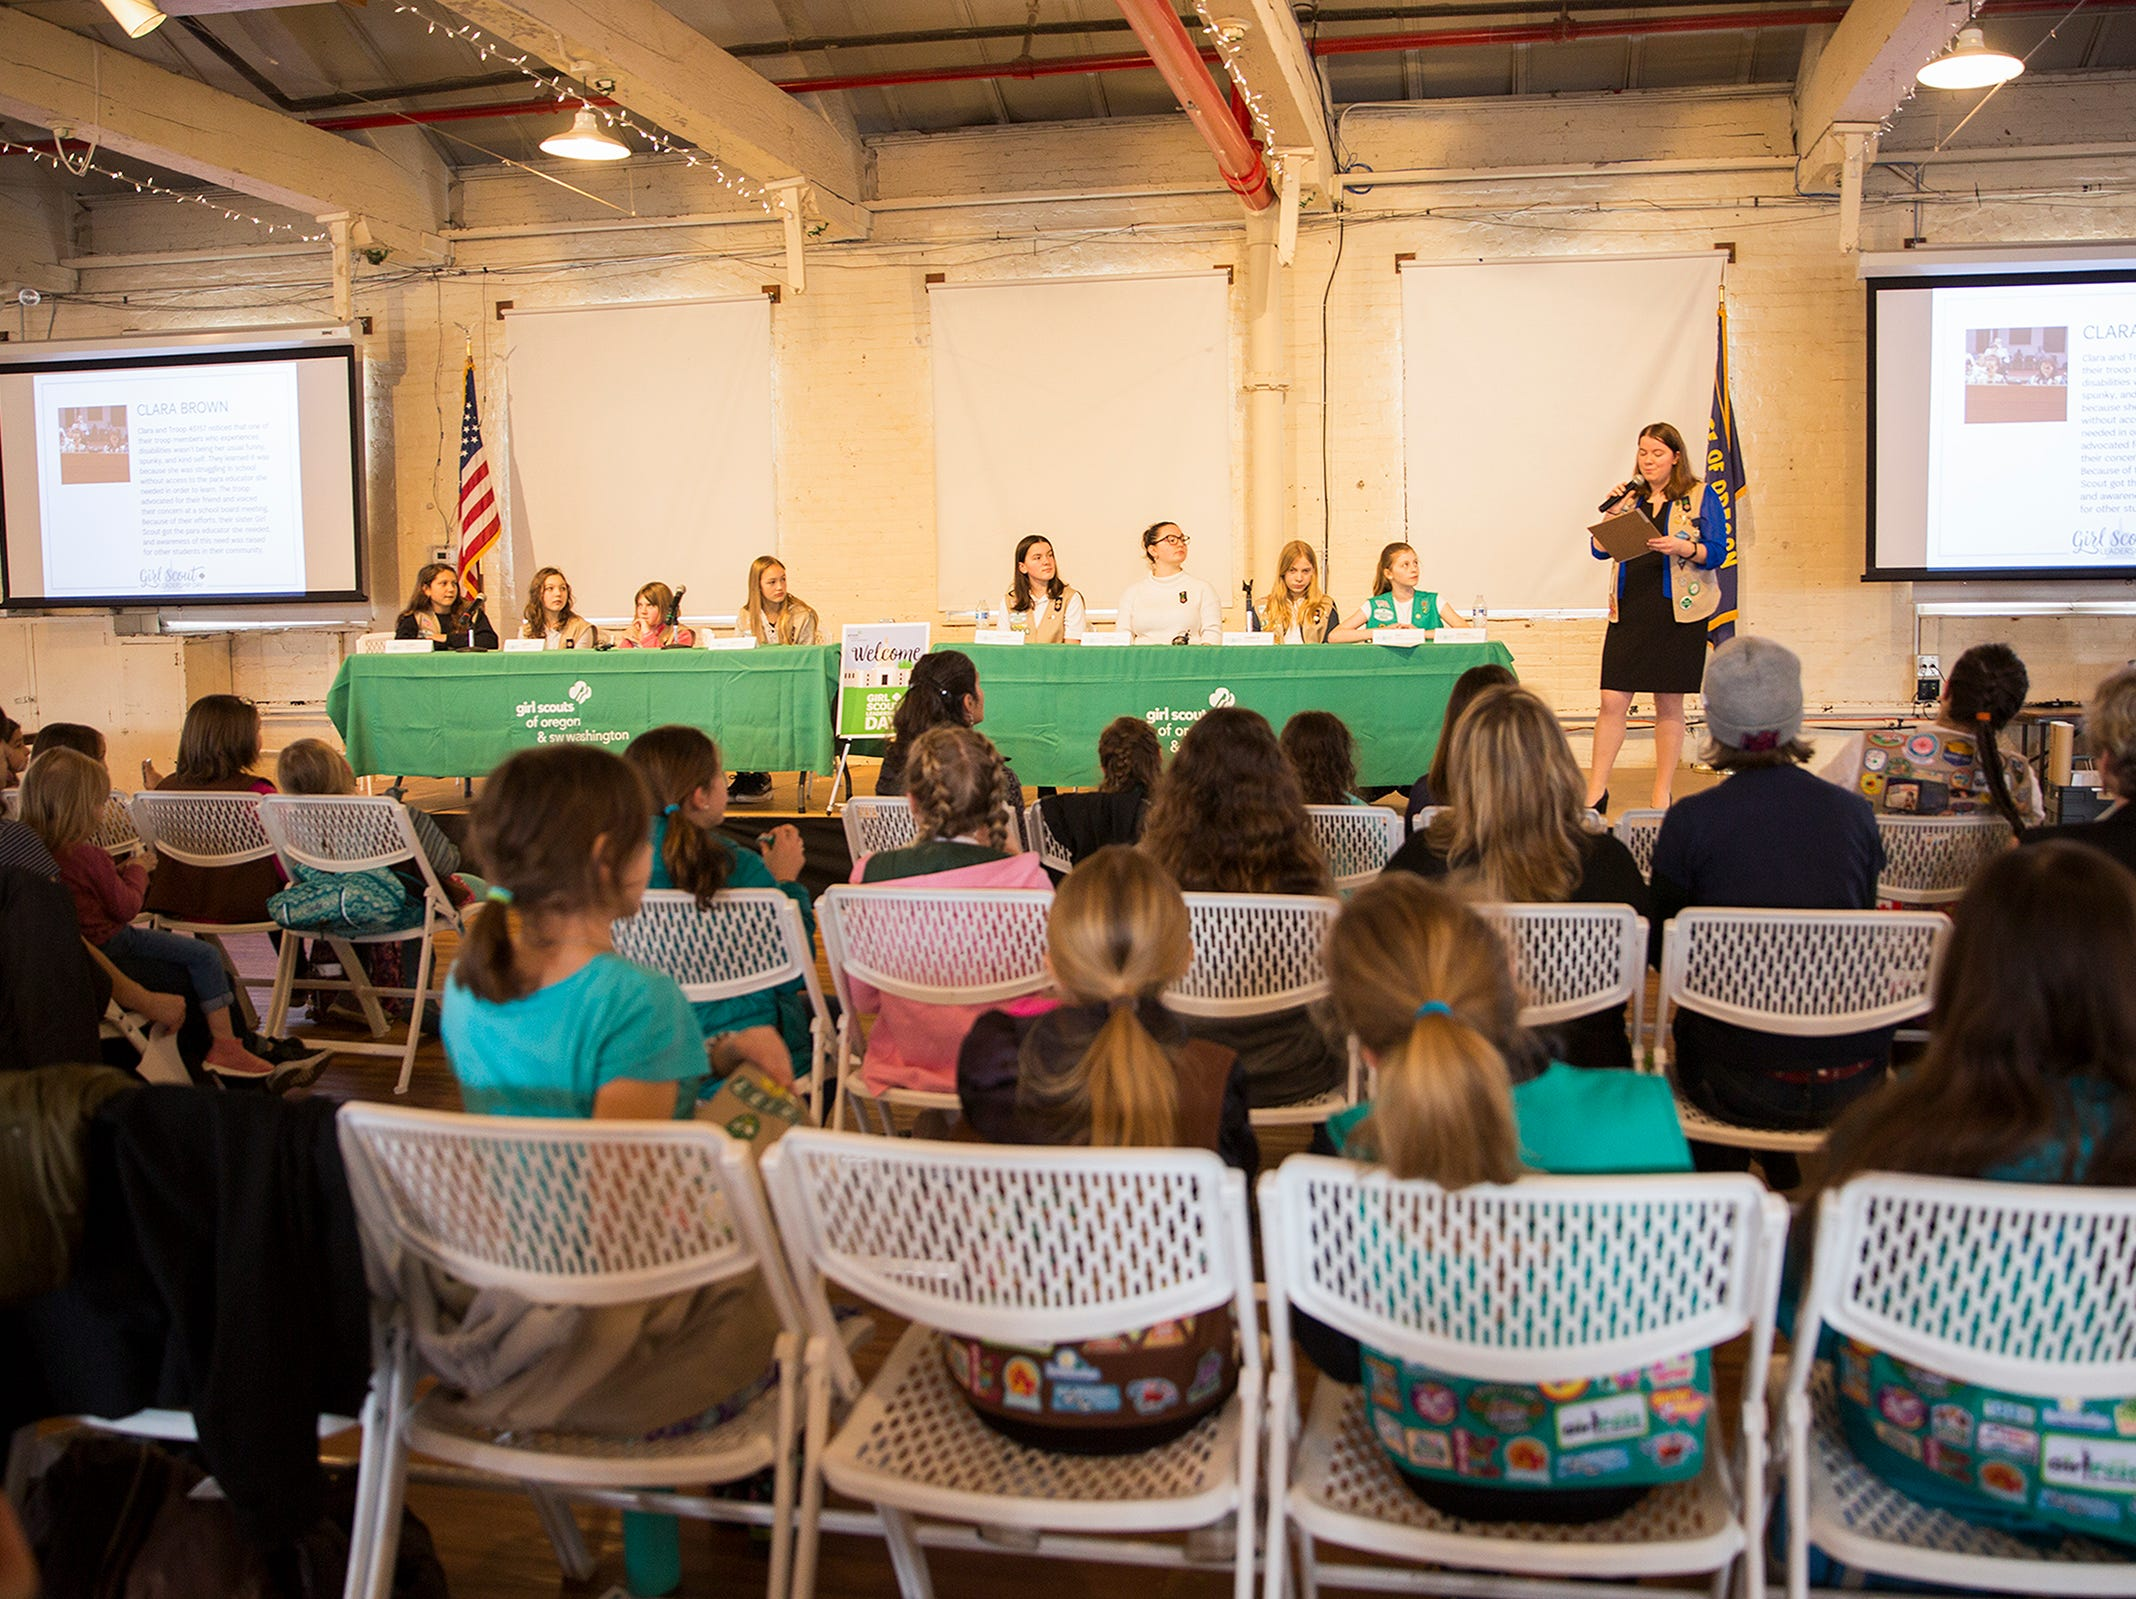 Honorary Girl Scouts speak on a Girls Who Make a Difference panel during Girl Scout Leadership Day at the Willamette Heritage Center in Salem March 12, 2019.